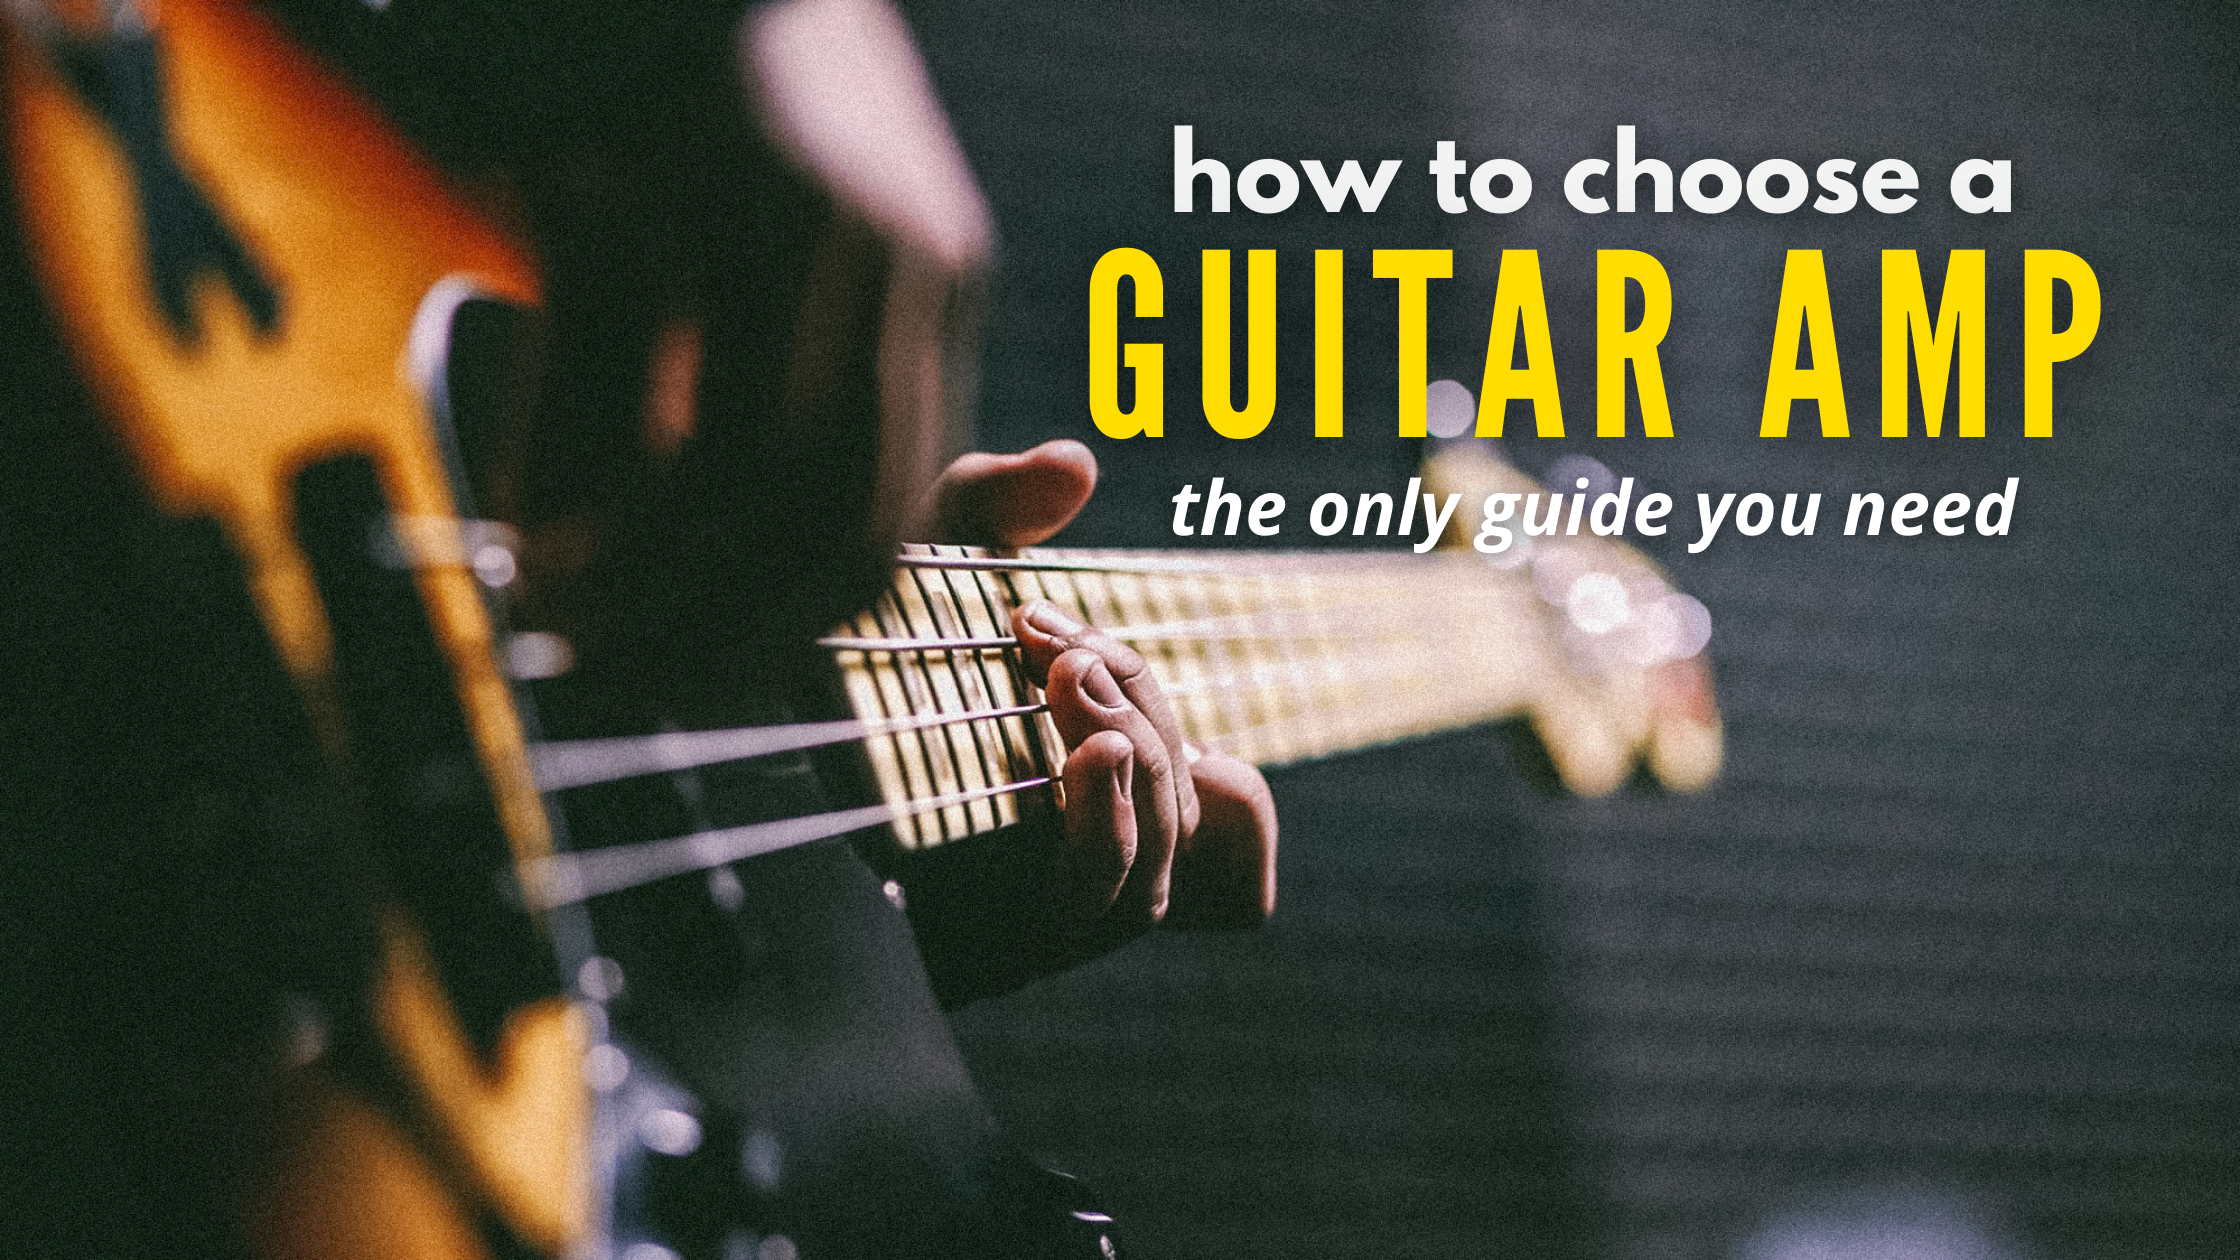 How to Choose a Guitar Amp: The Only Guide You Need